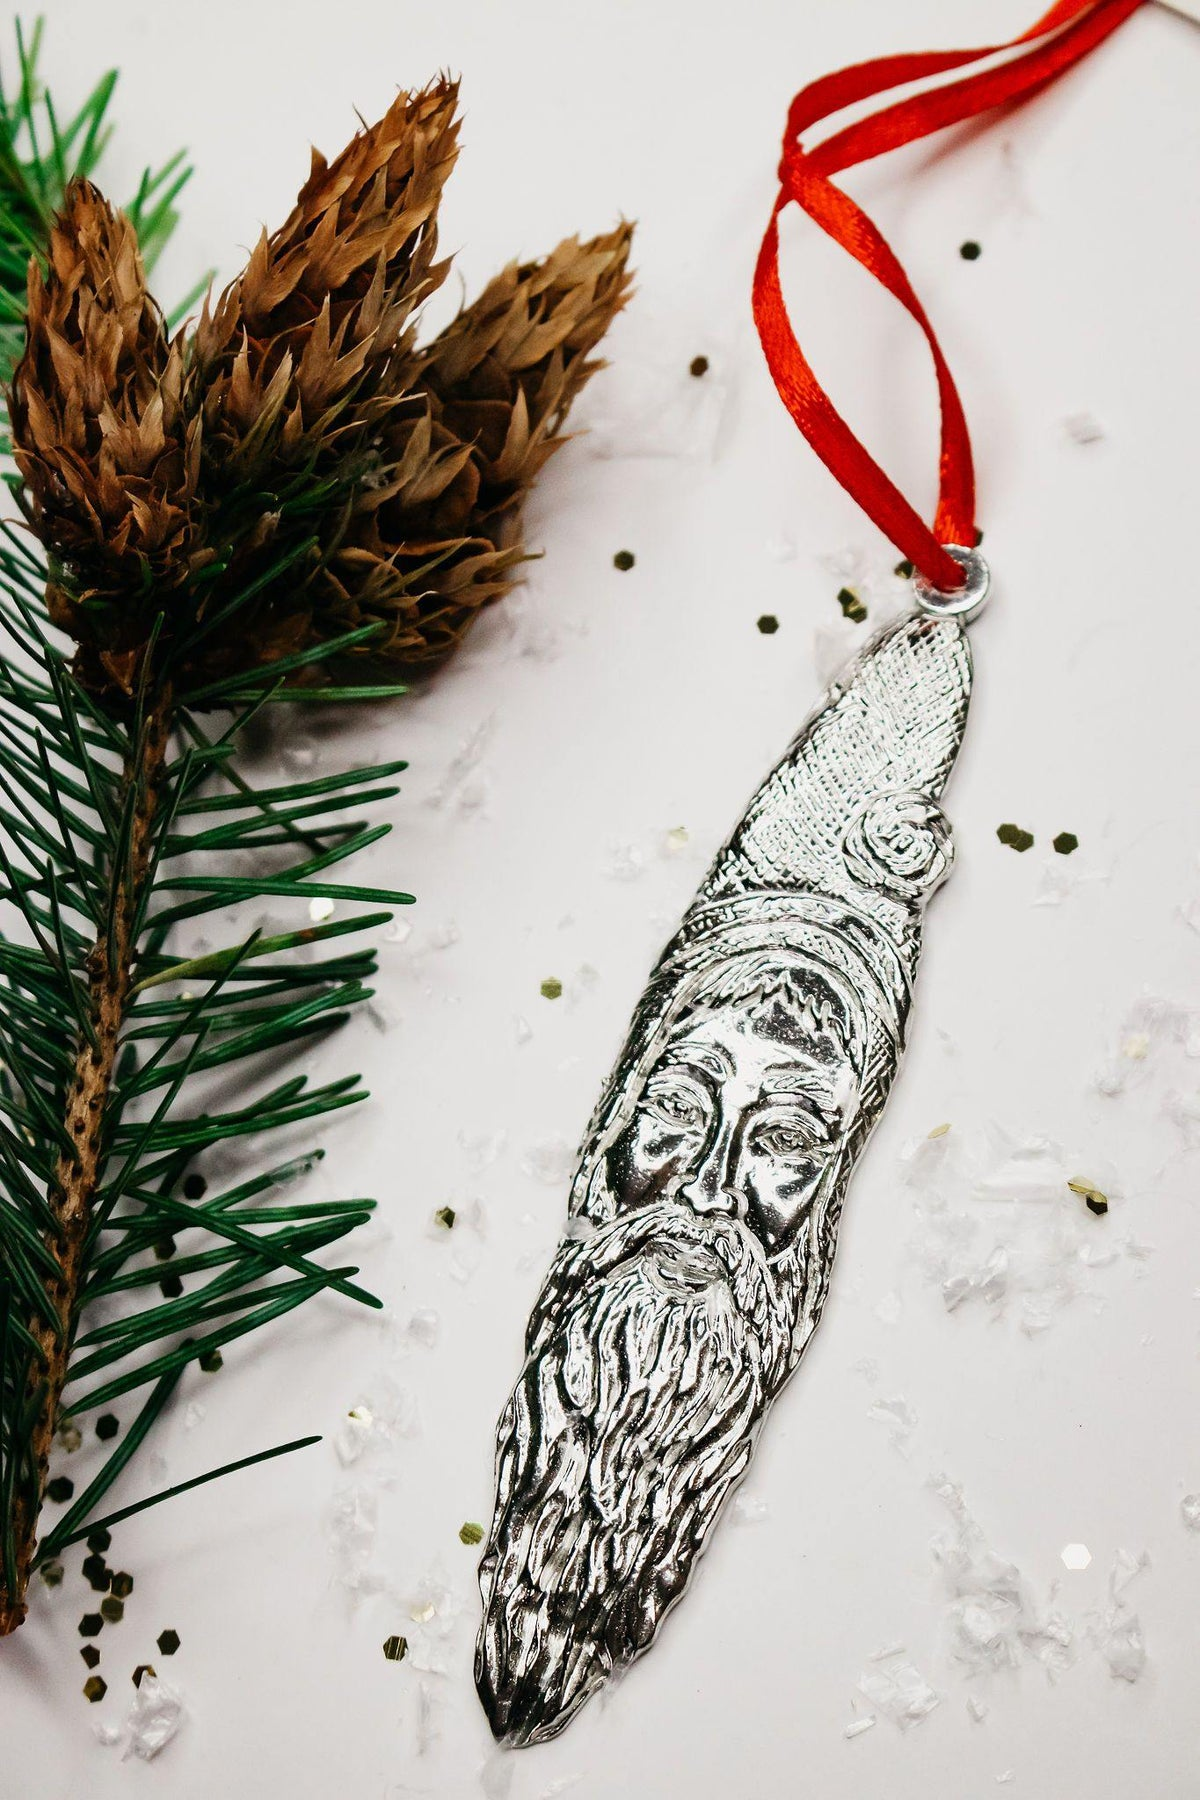 Handmade Santa Claus Sickle Beard Christmas Holiday Ornament Pewter - House of Morgan Pewter